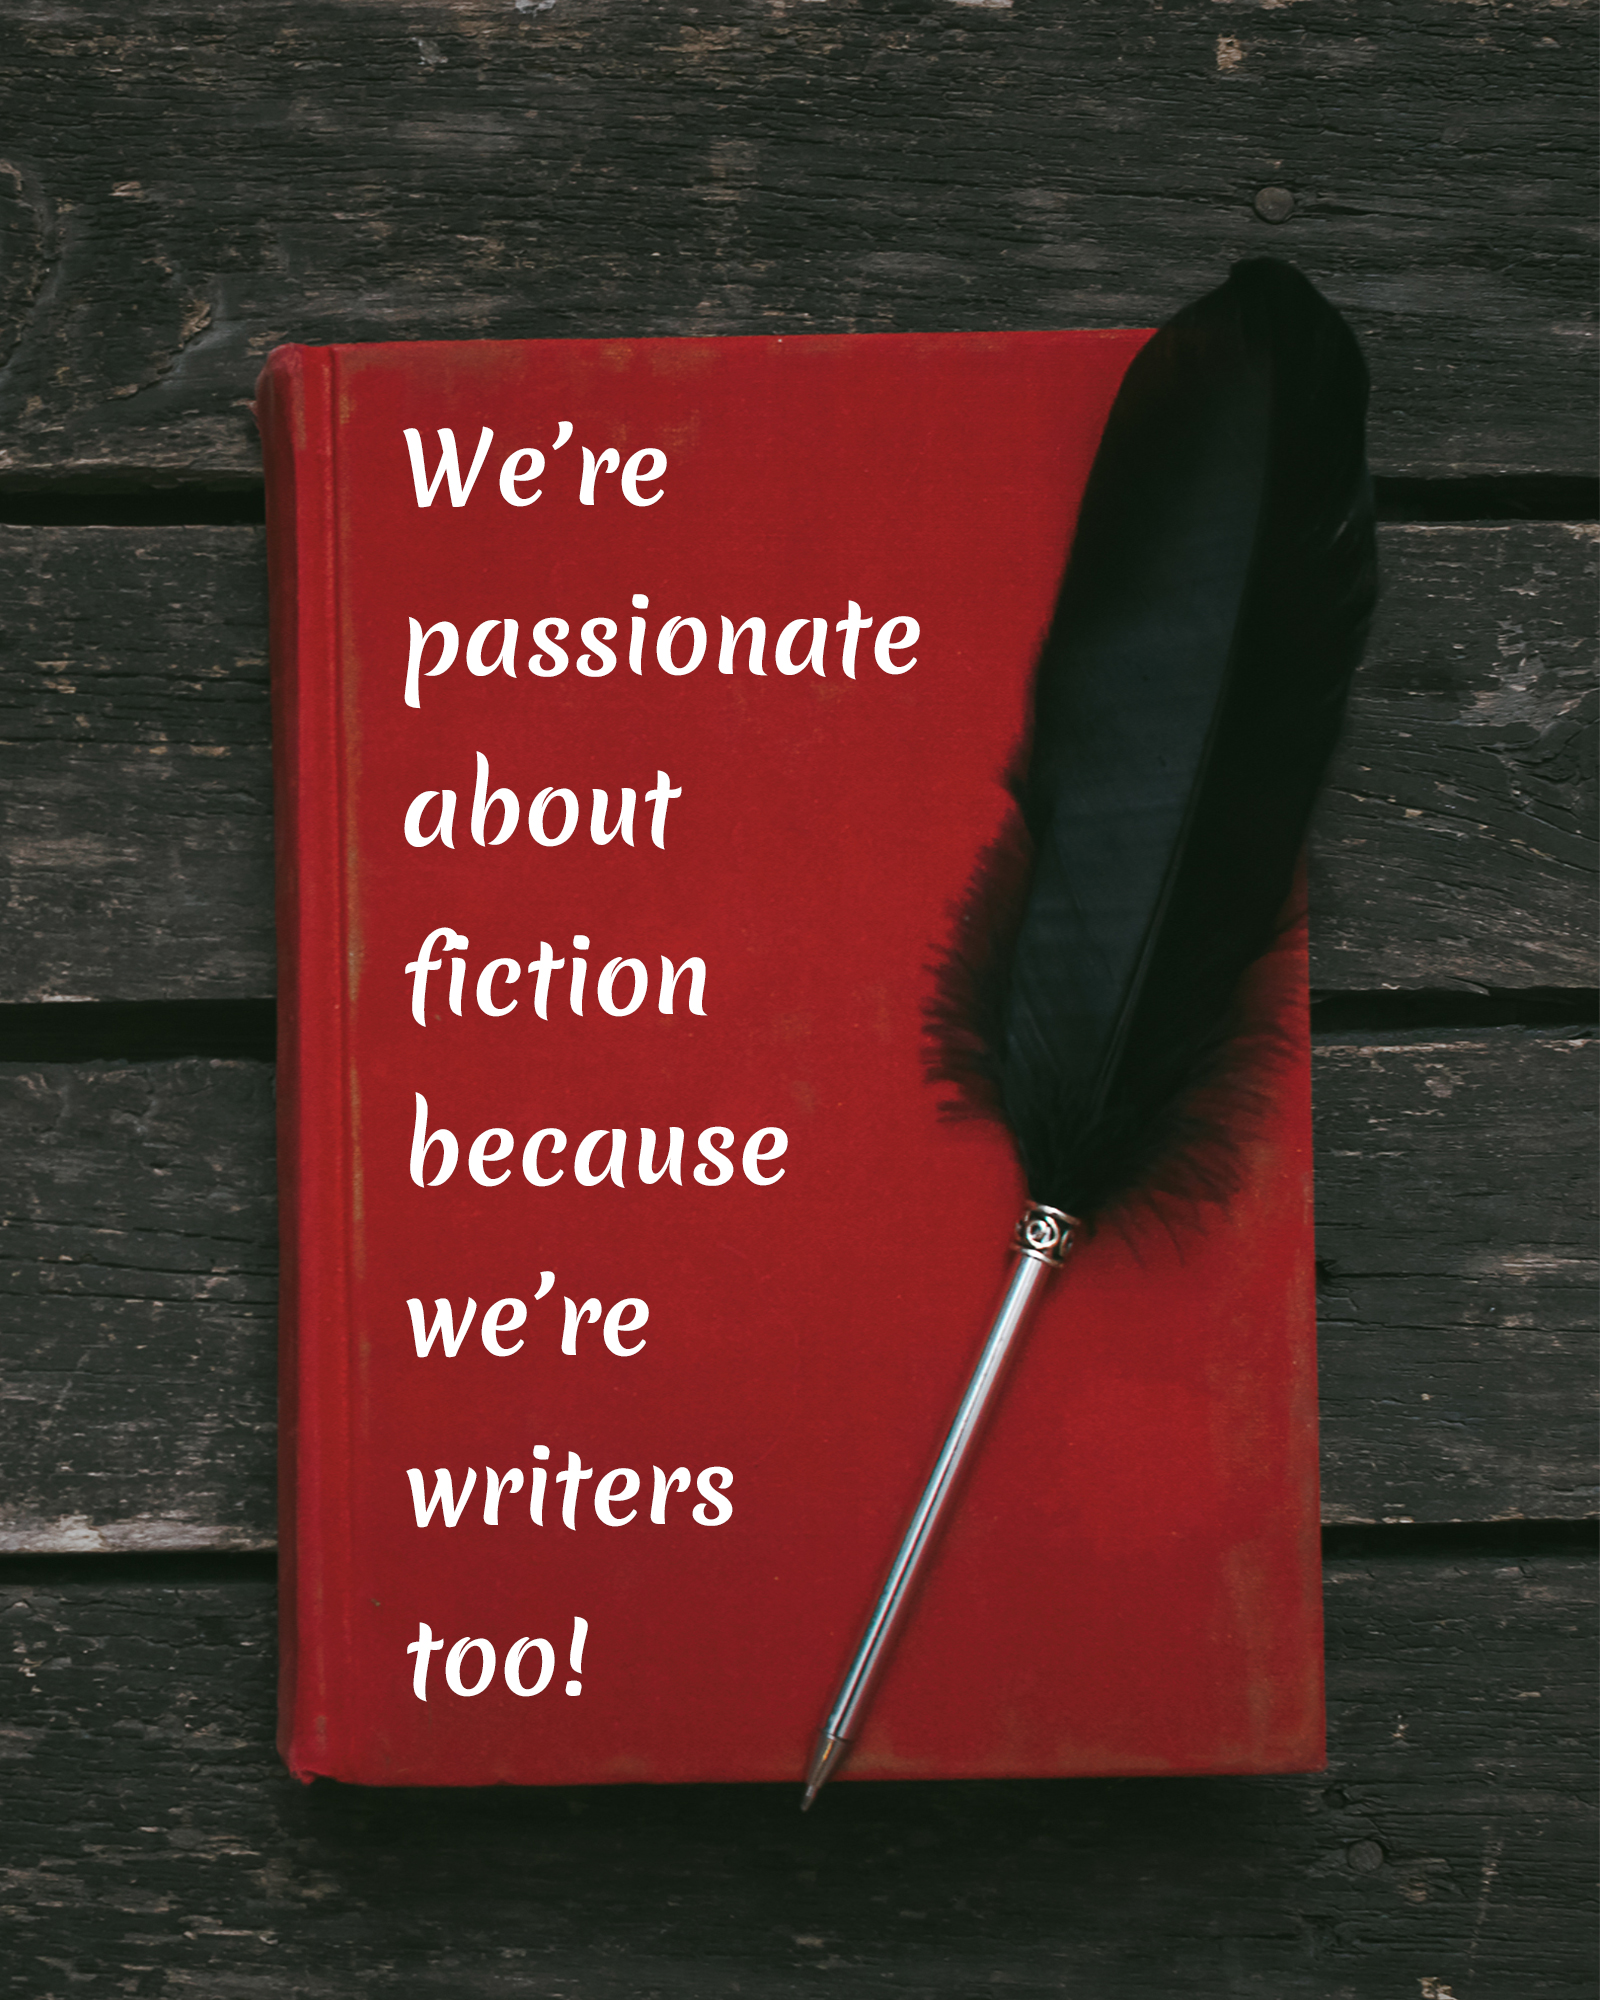 Marketing and publicity for fiction authors and fiction books. Red book with black feather quill pen. White lettering on book says we're passionate about fiction because we're writers too!